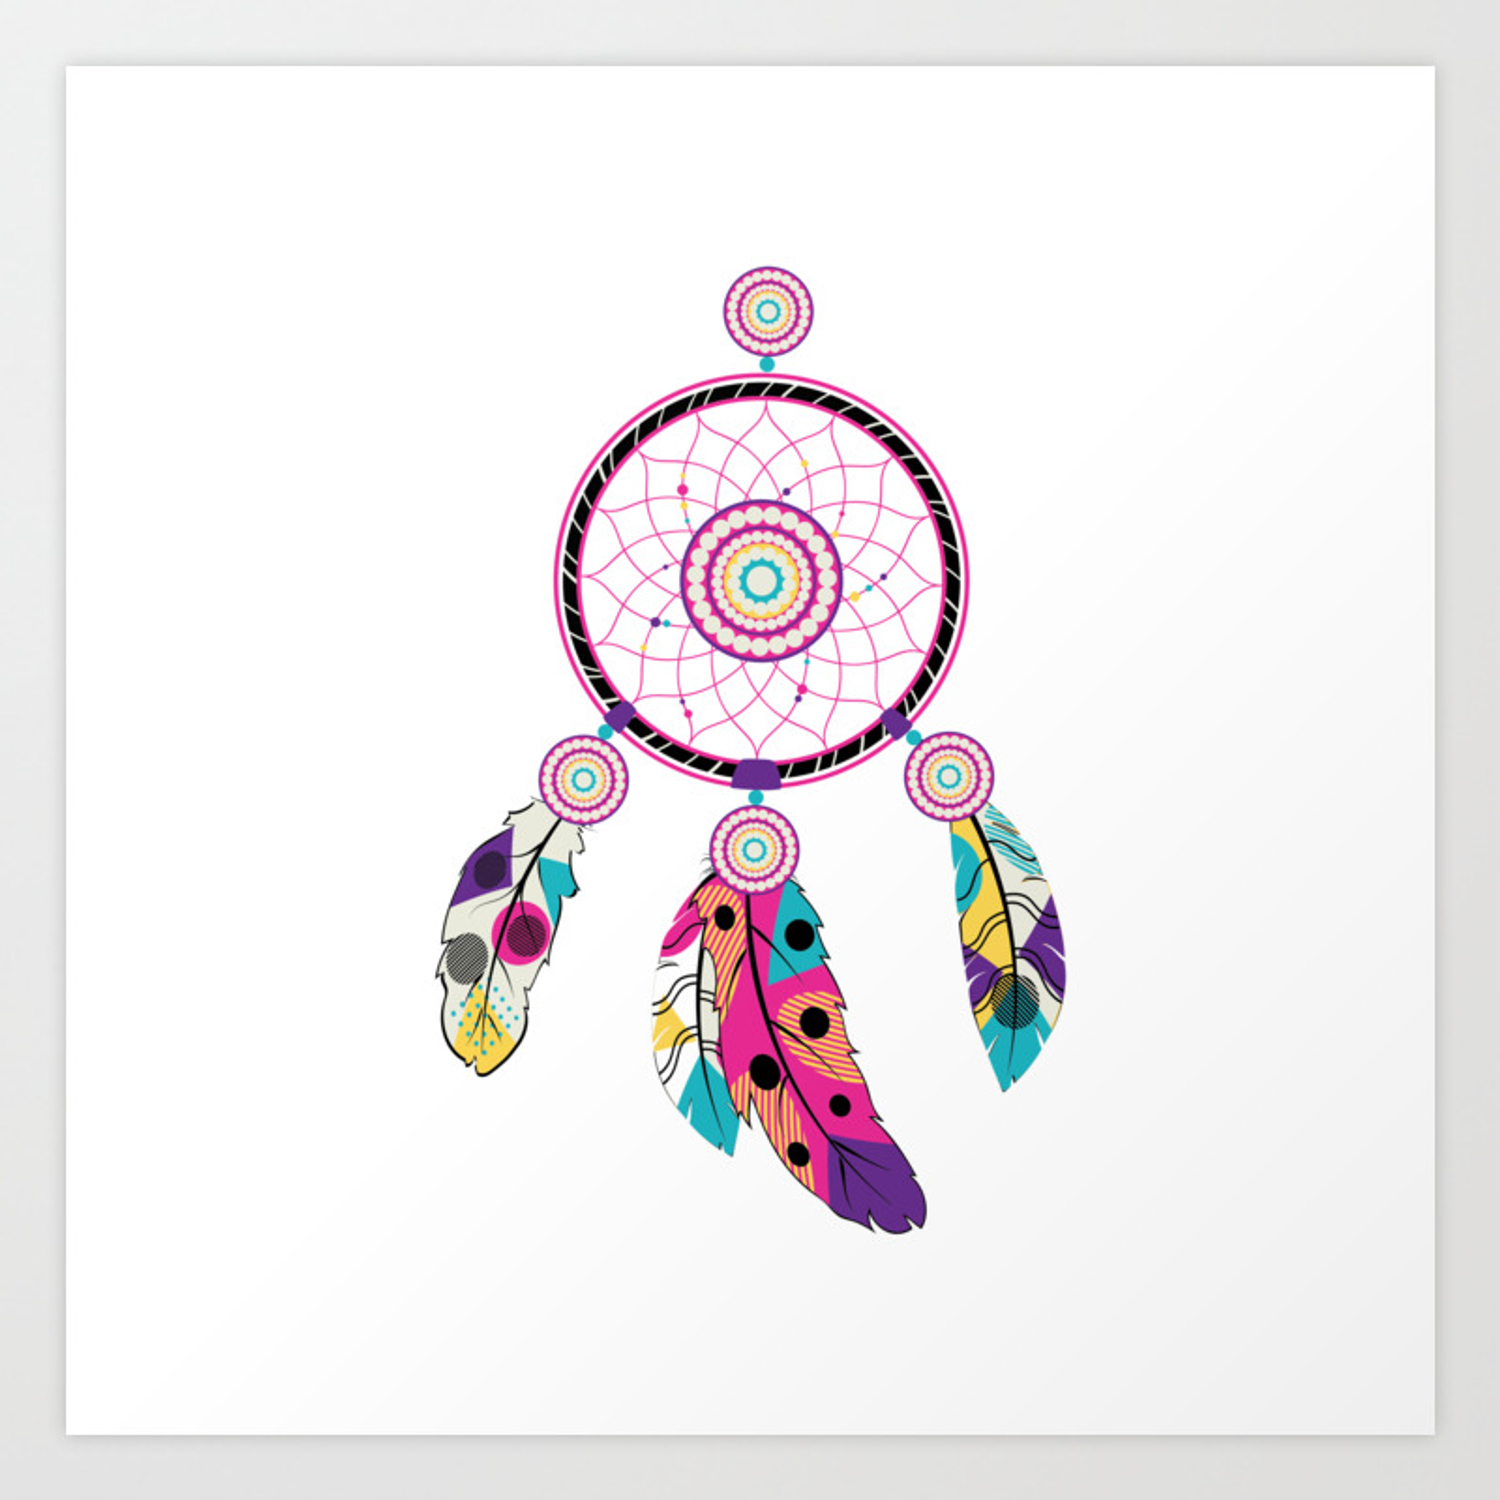 - Decorative Native Dream Catcher With Colorful Stylized Feathers